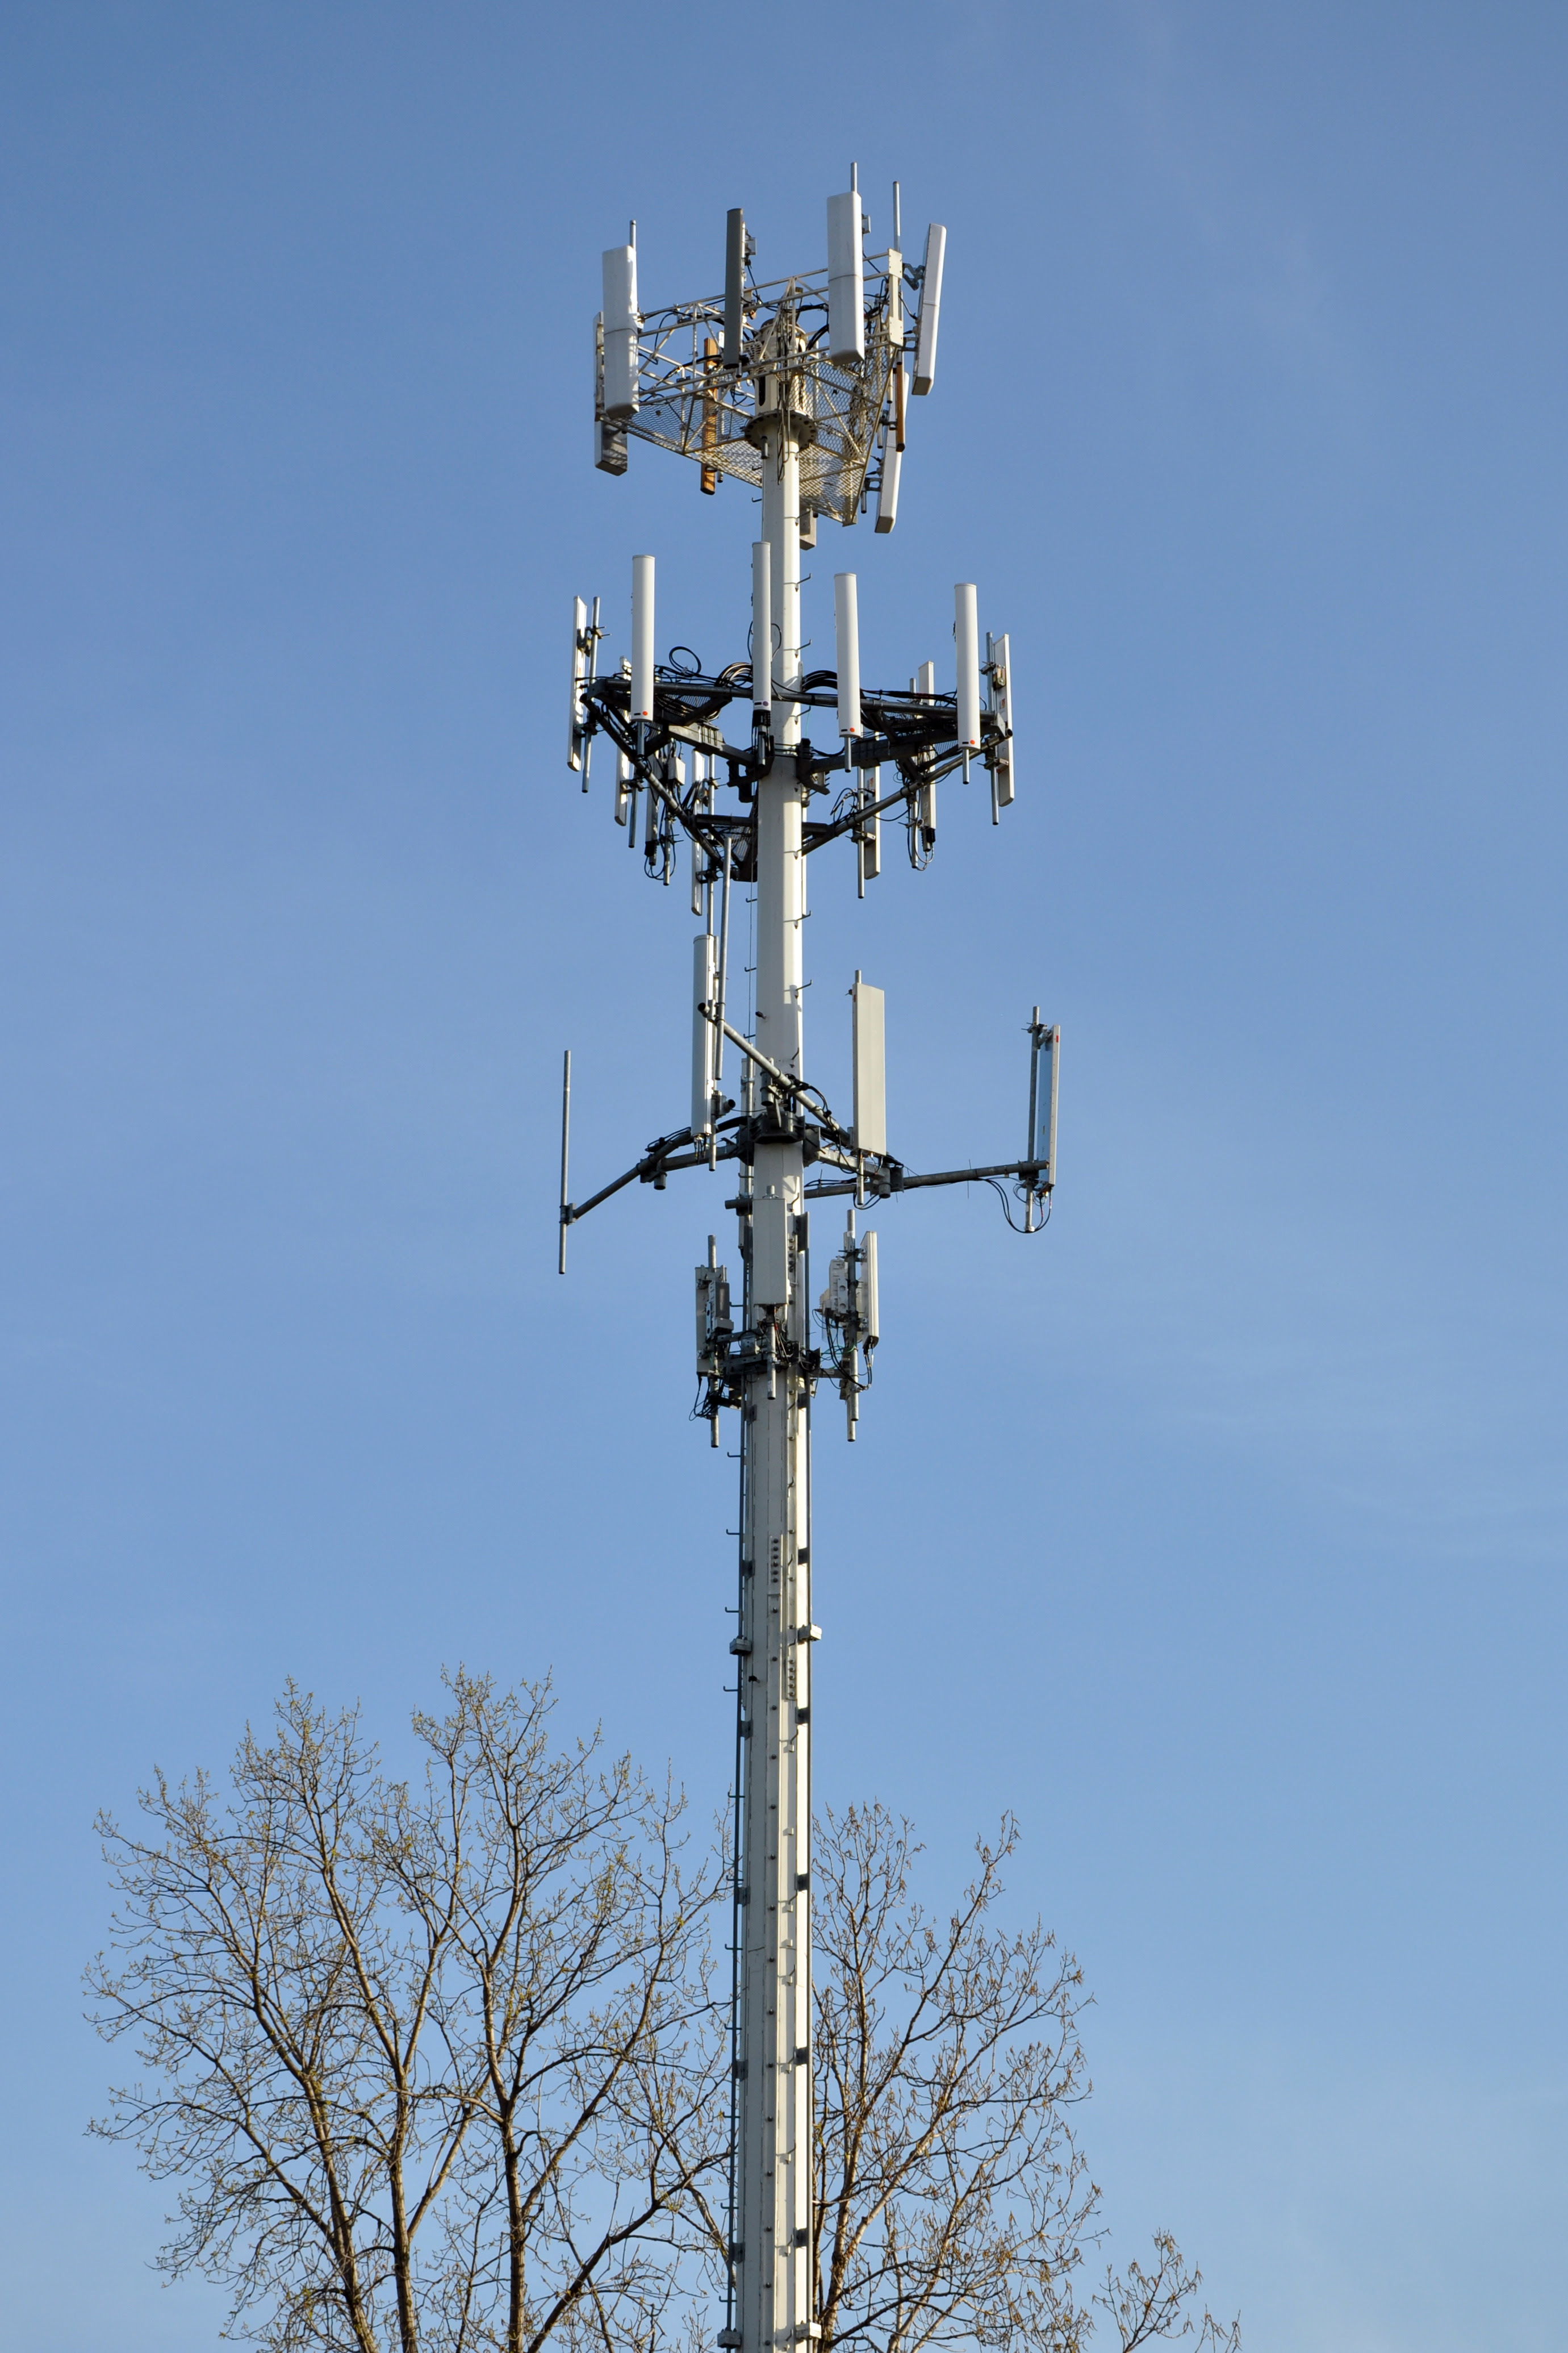 http://upload.wikimedia.org/wikipedia/commons/2/2d/Cell_Phone_Tower.jpg